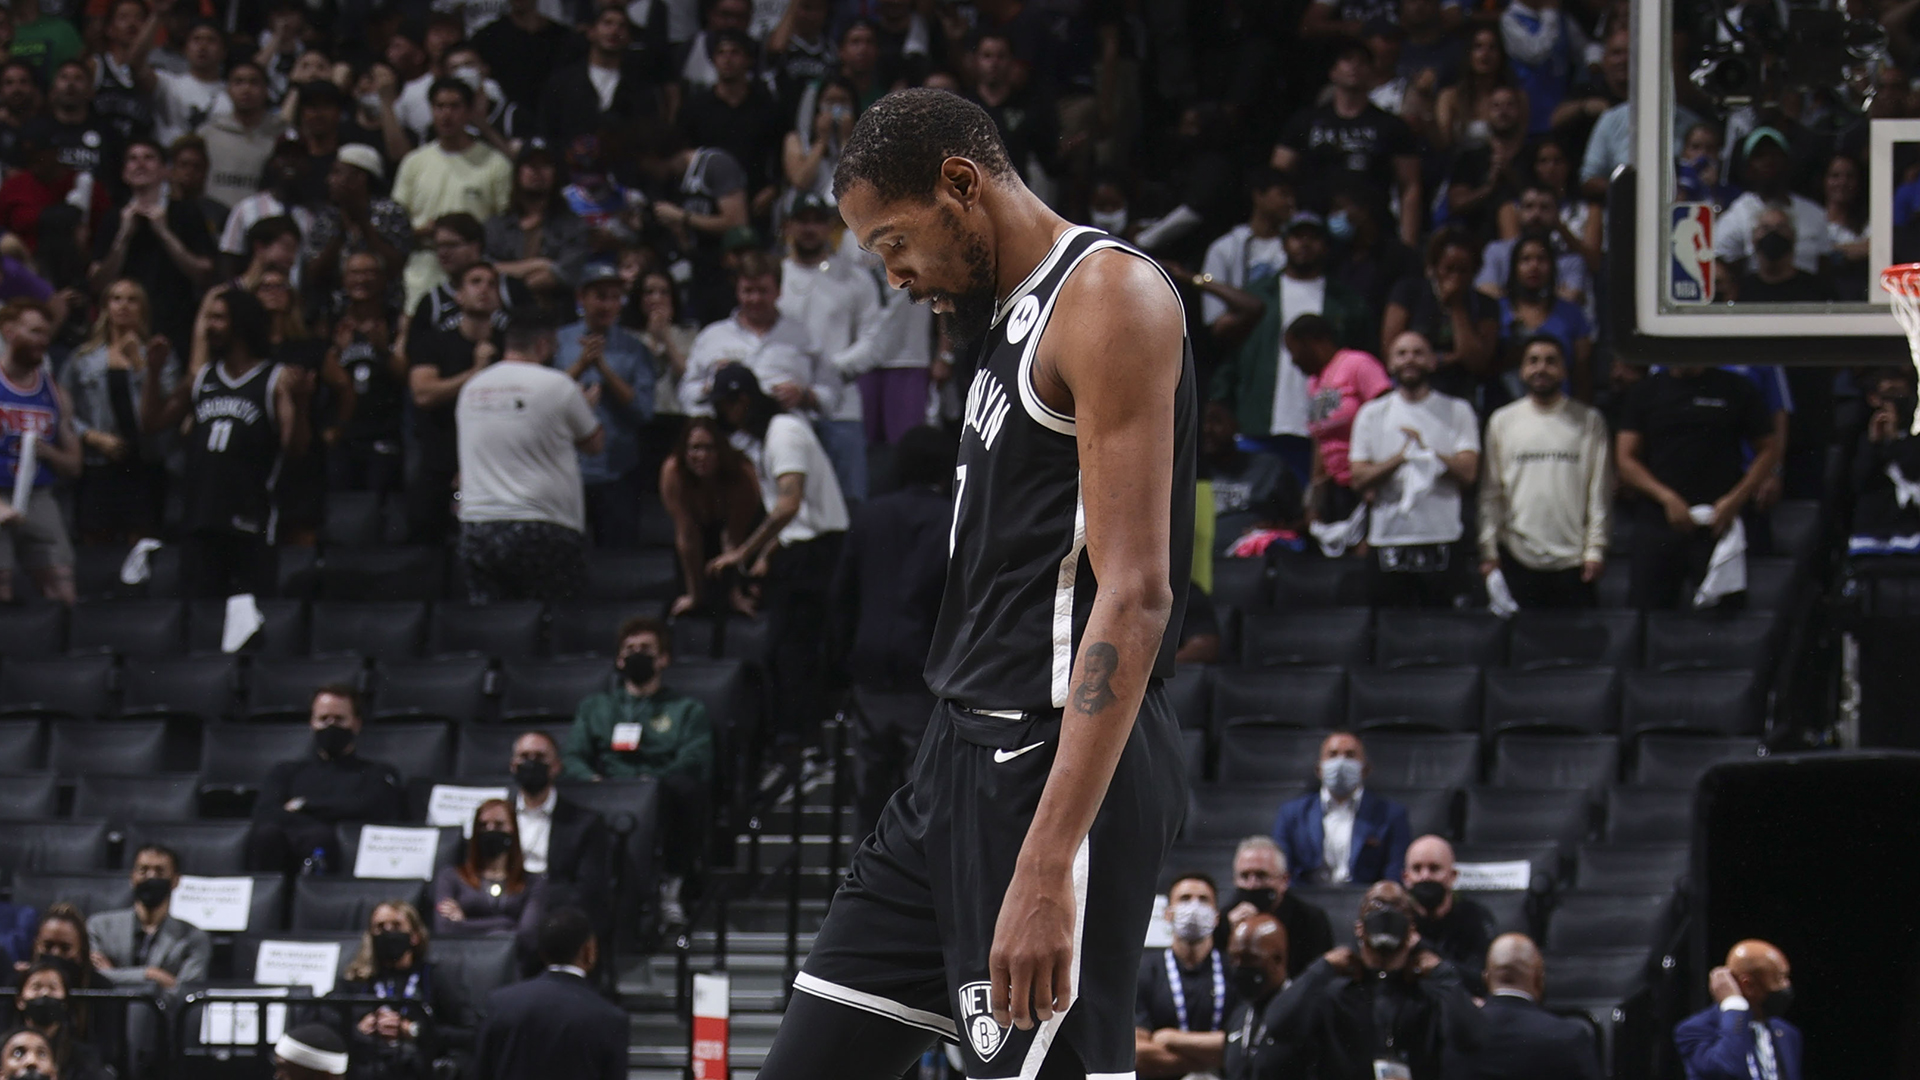 Inside the NBA: What went wrong for the Nets?